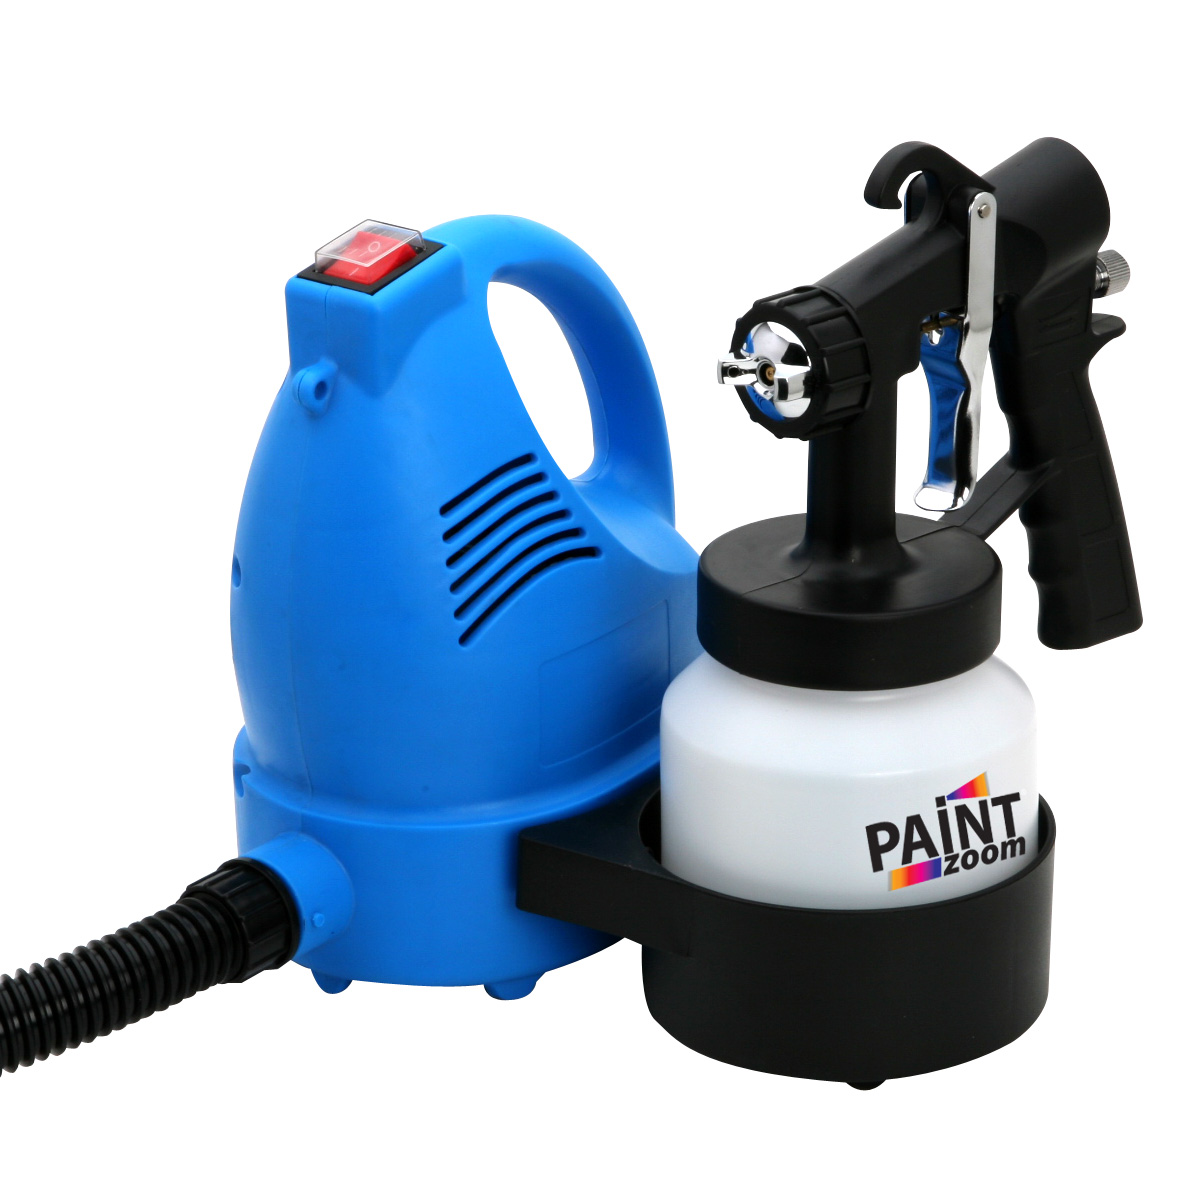 Northern Response S Paint Zoom Paint Sprayer Offers Canadians A